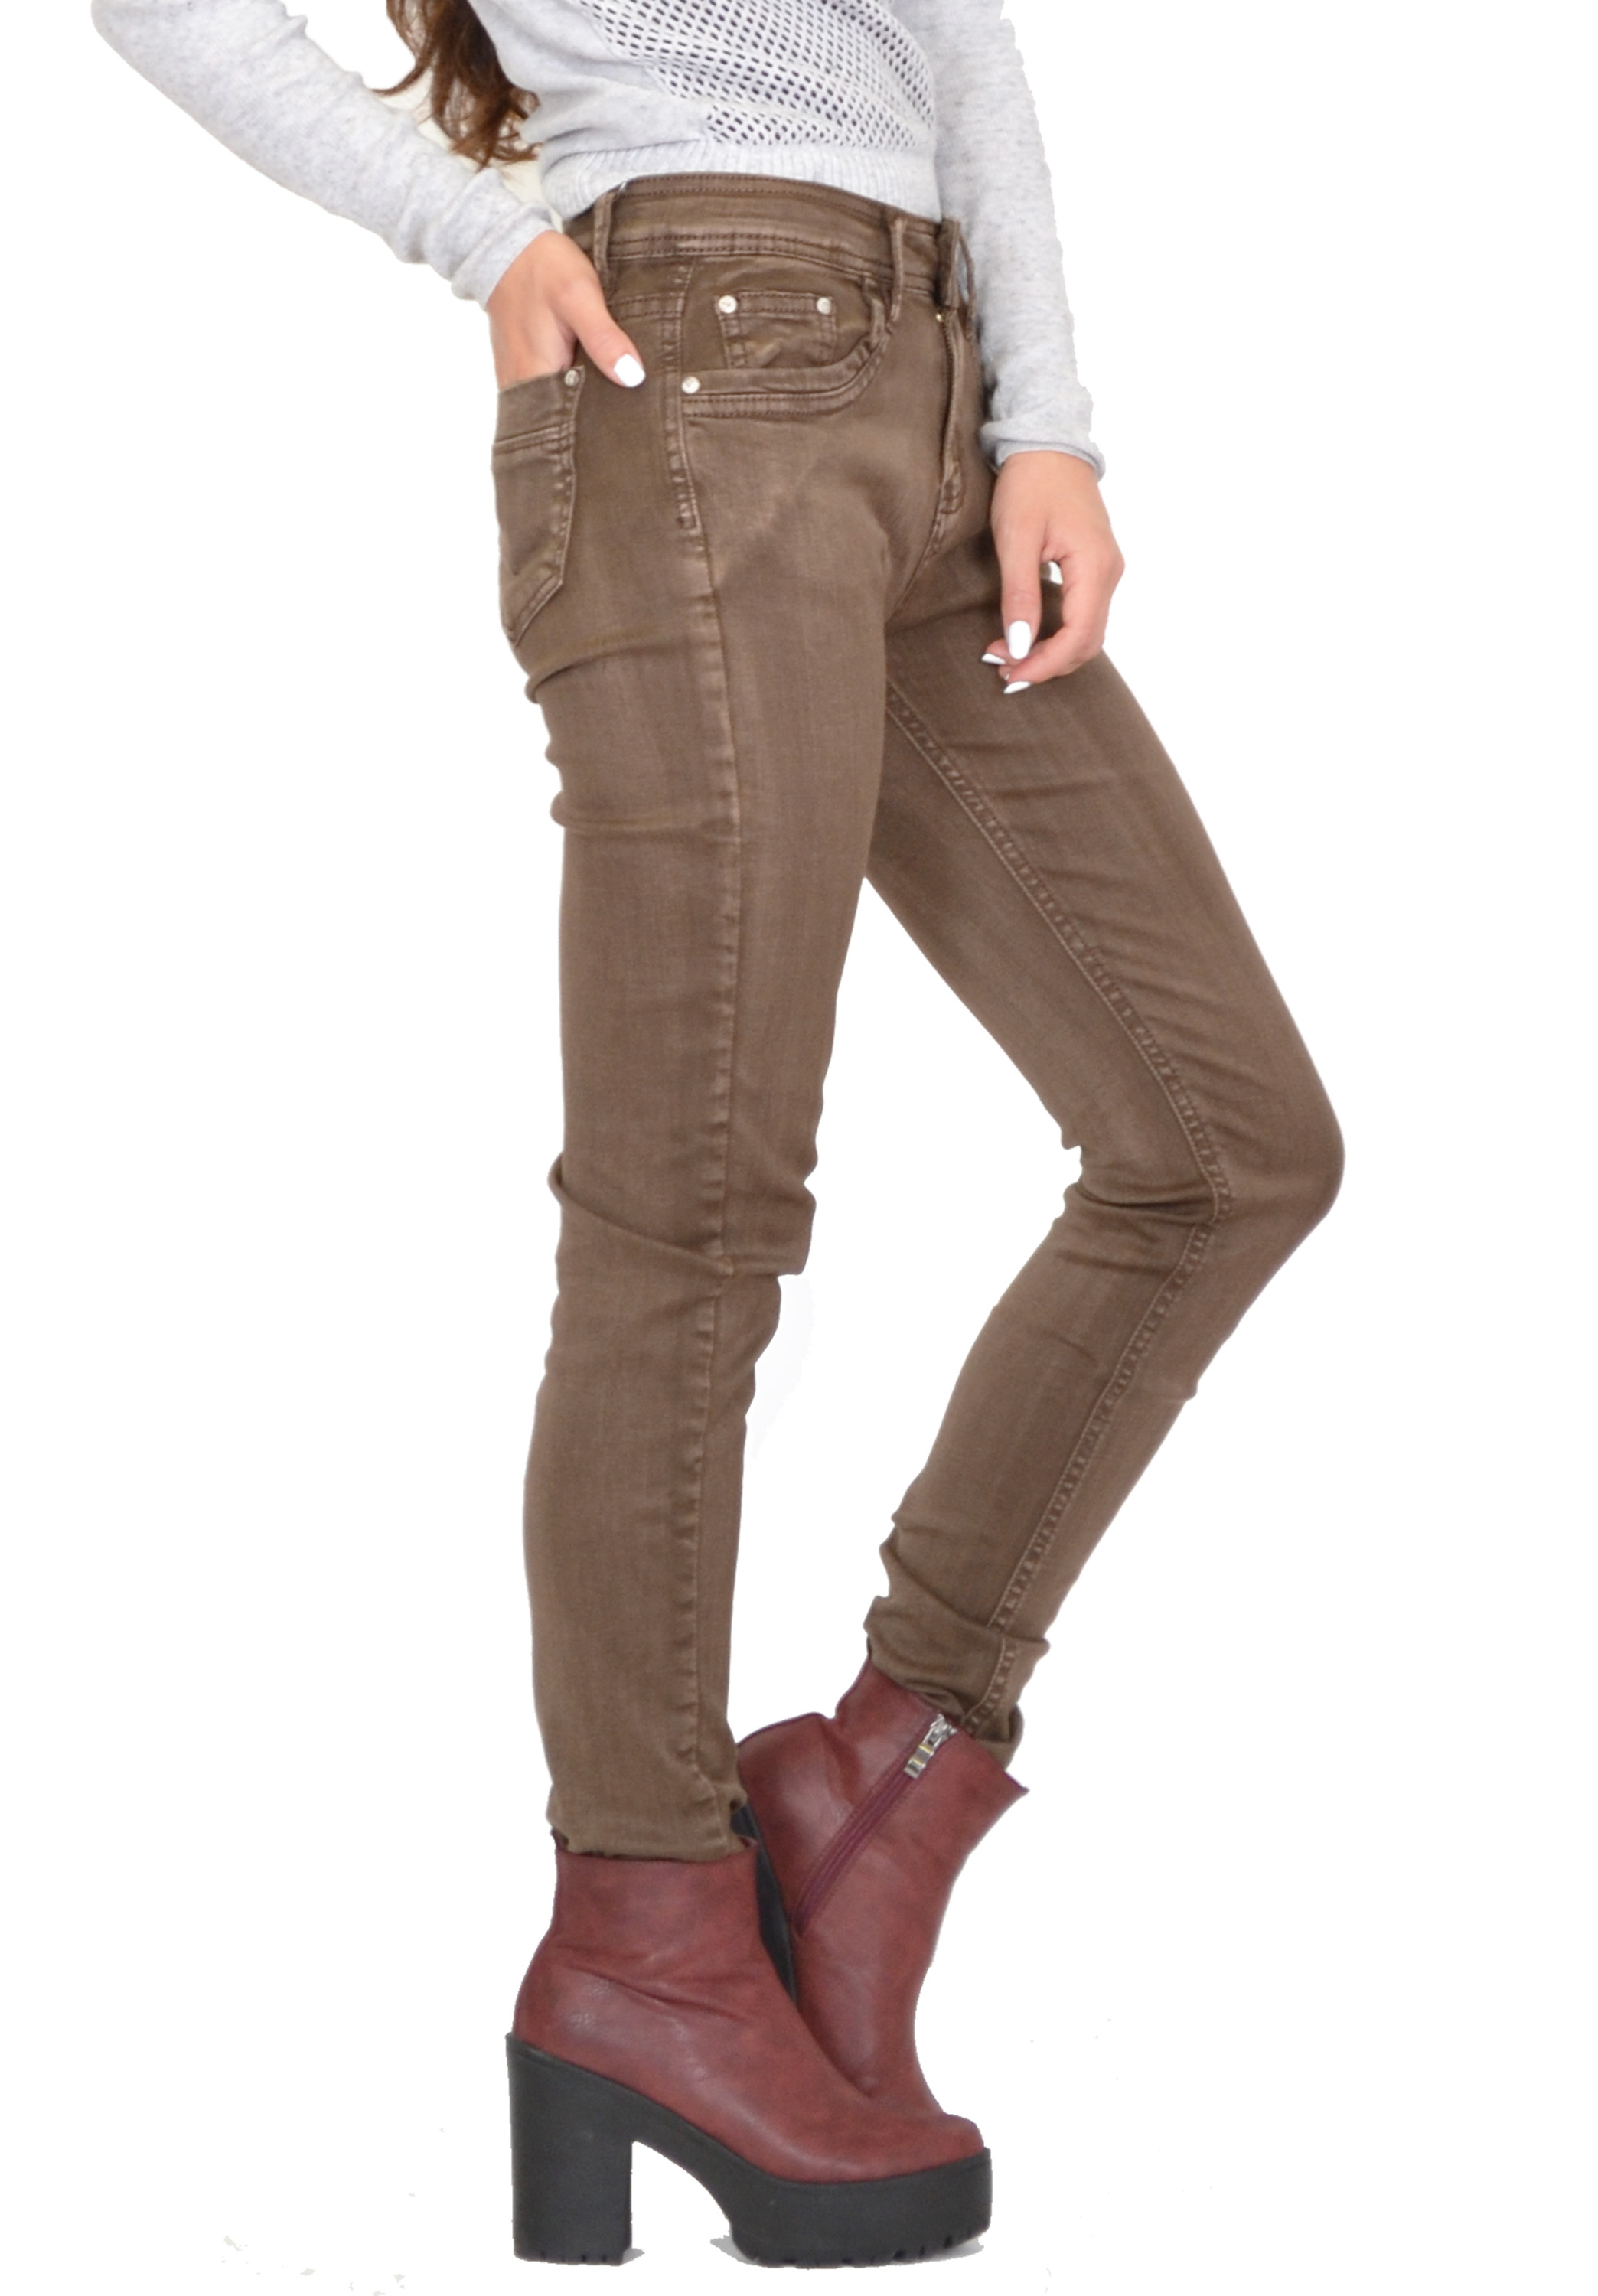 Find great deals on eBay for ladies brown jeans. Shop with confidence.